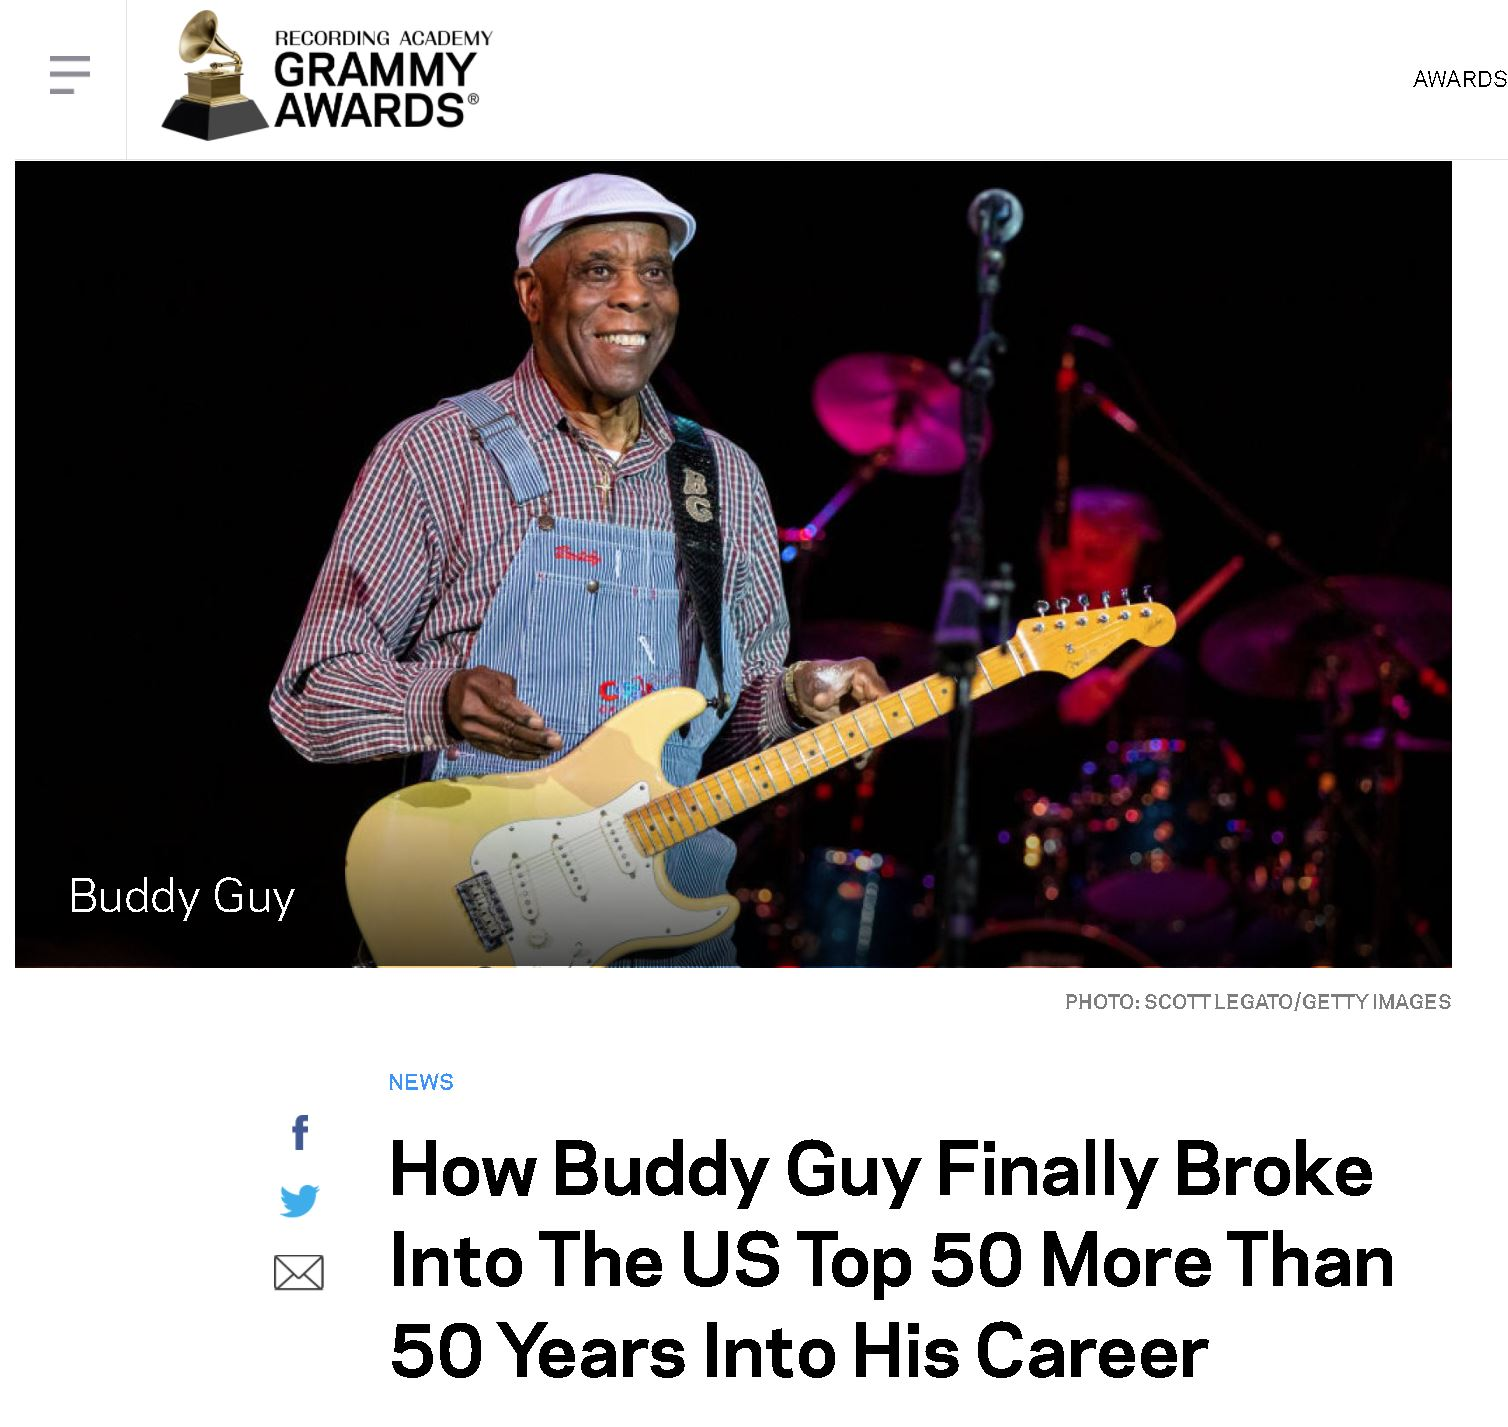 Buddy Guy - Grammys